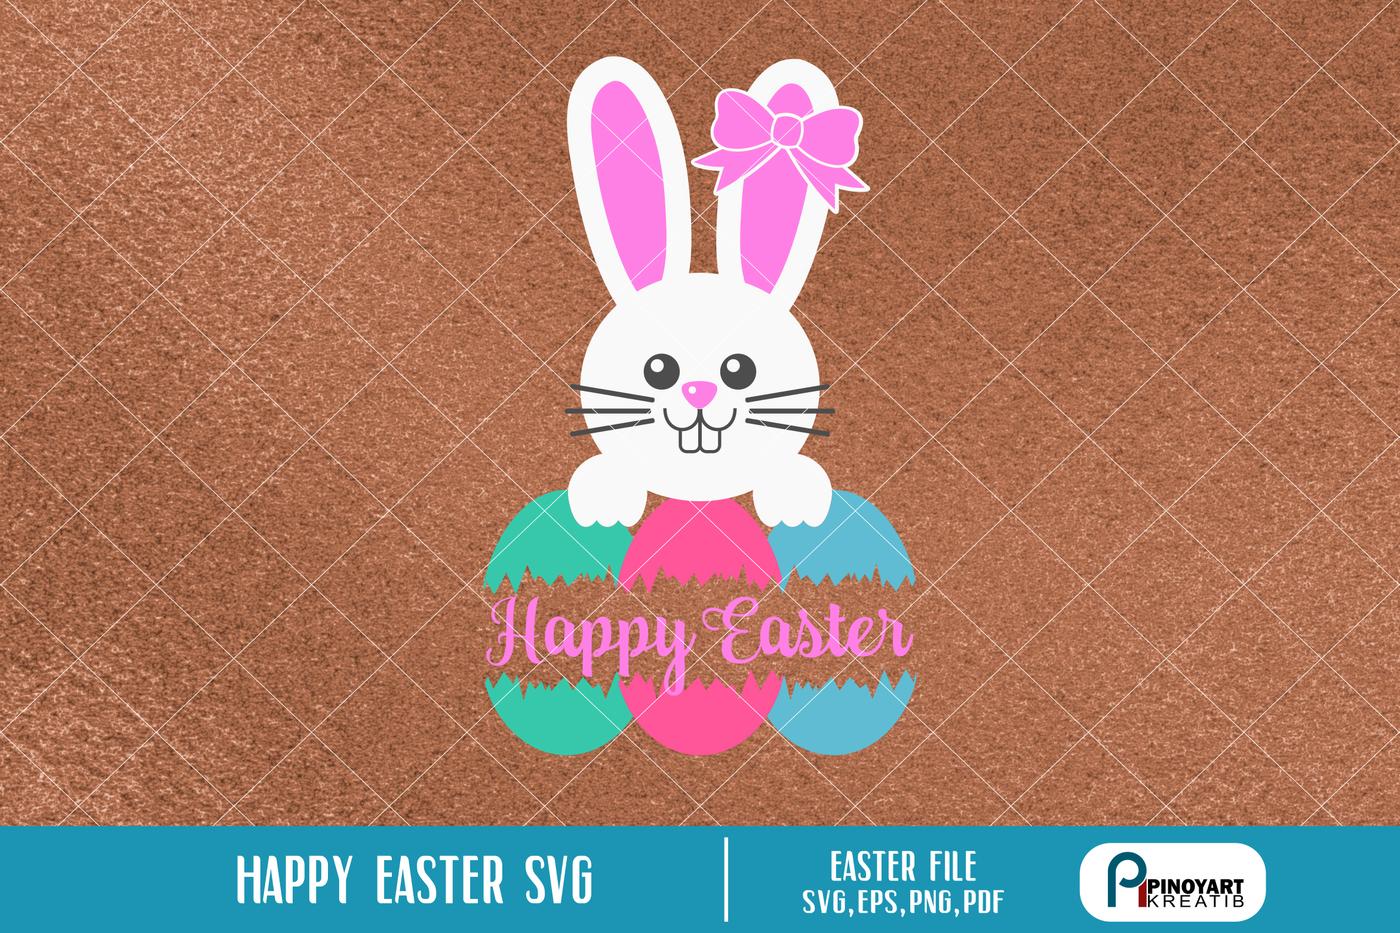 Happy Easter Svg Easter Svg Easter Egg Svg Easter Bunny Svg